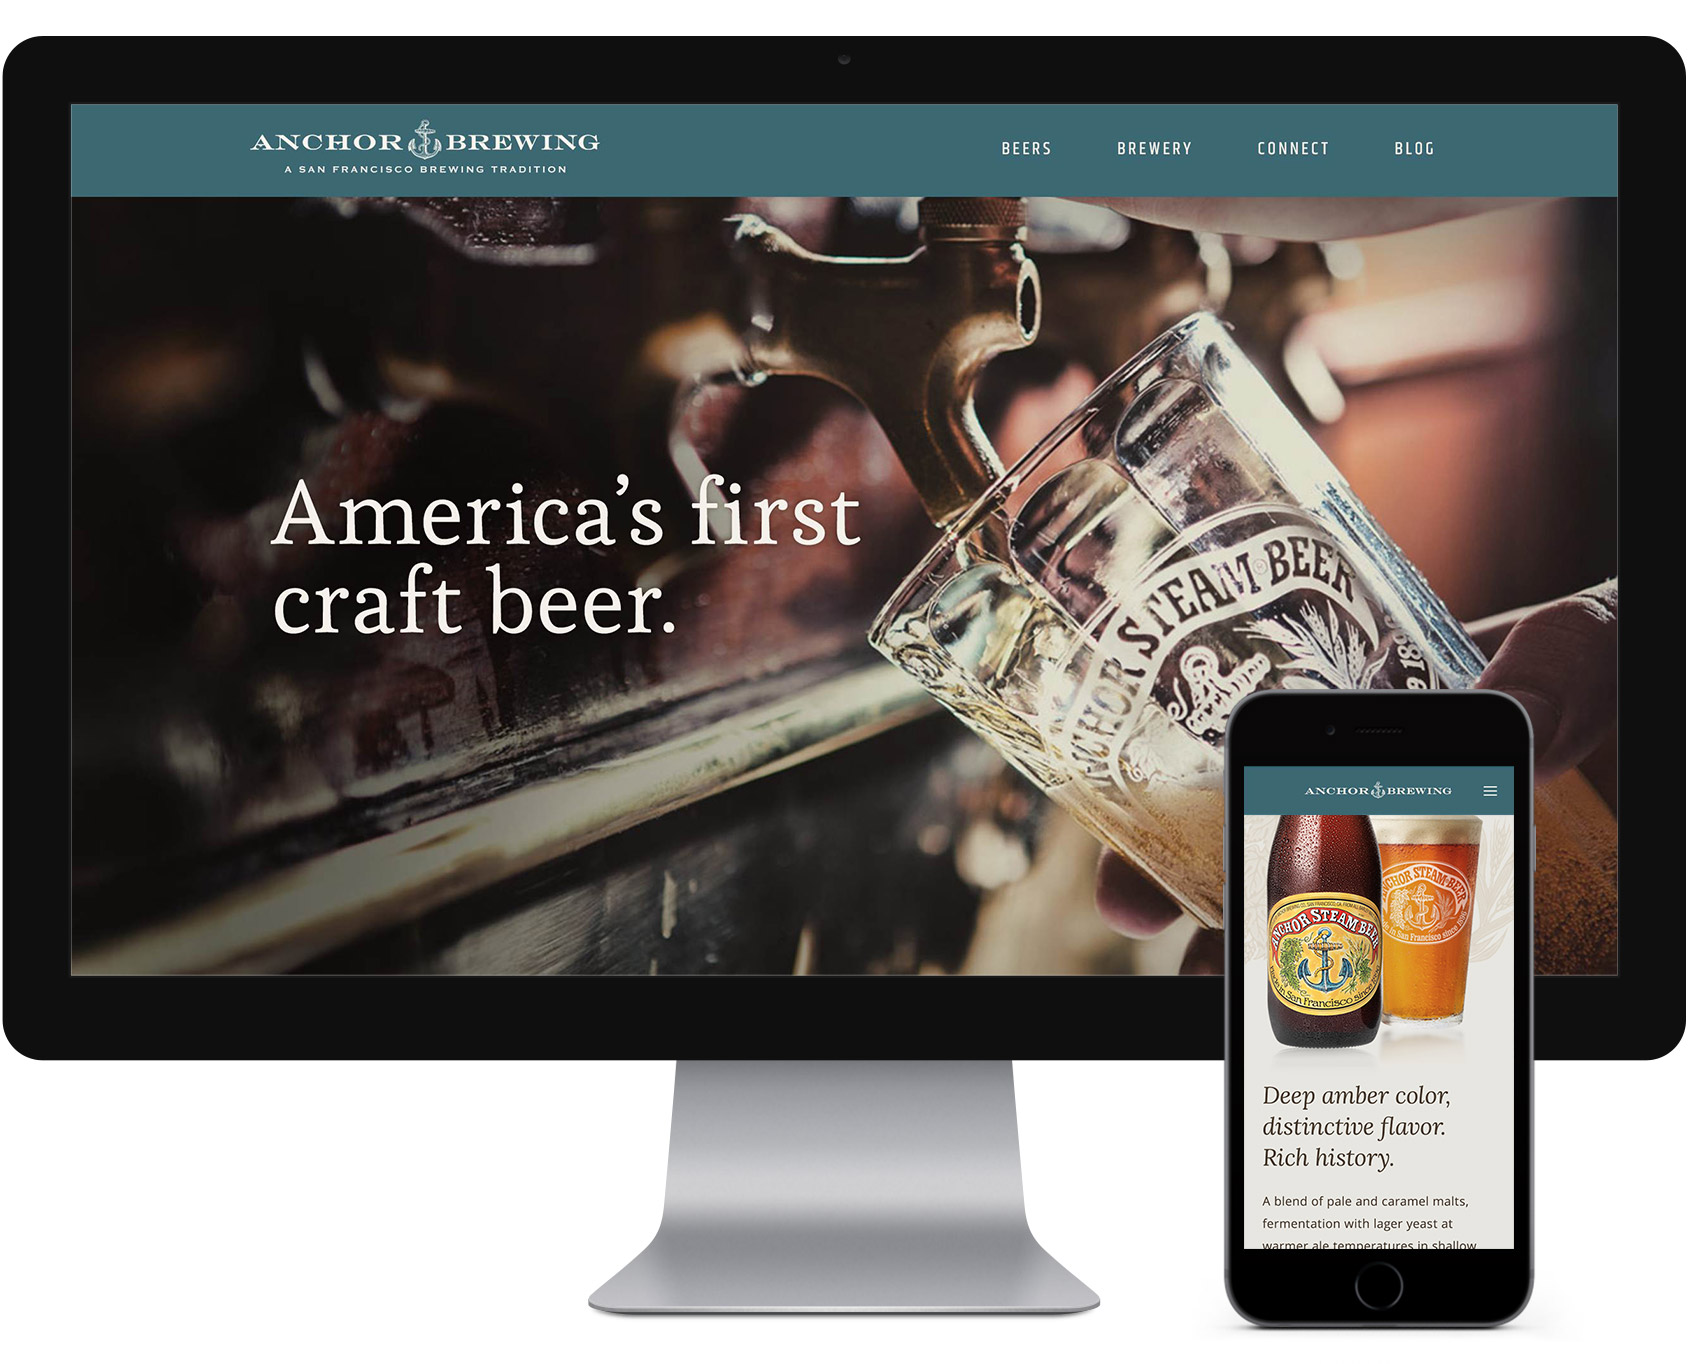 Anchor-Brewing-Allison-Henry-Intro.jpg